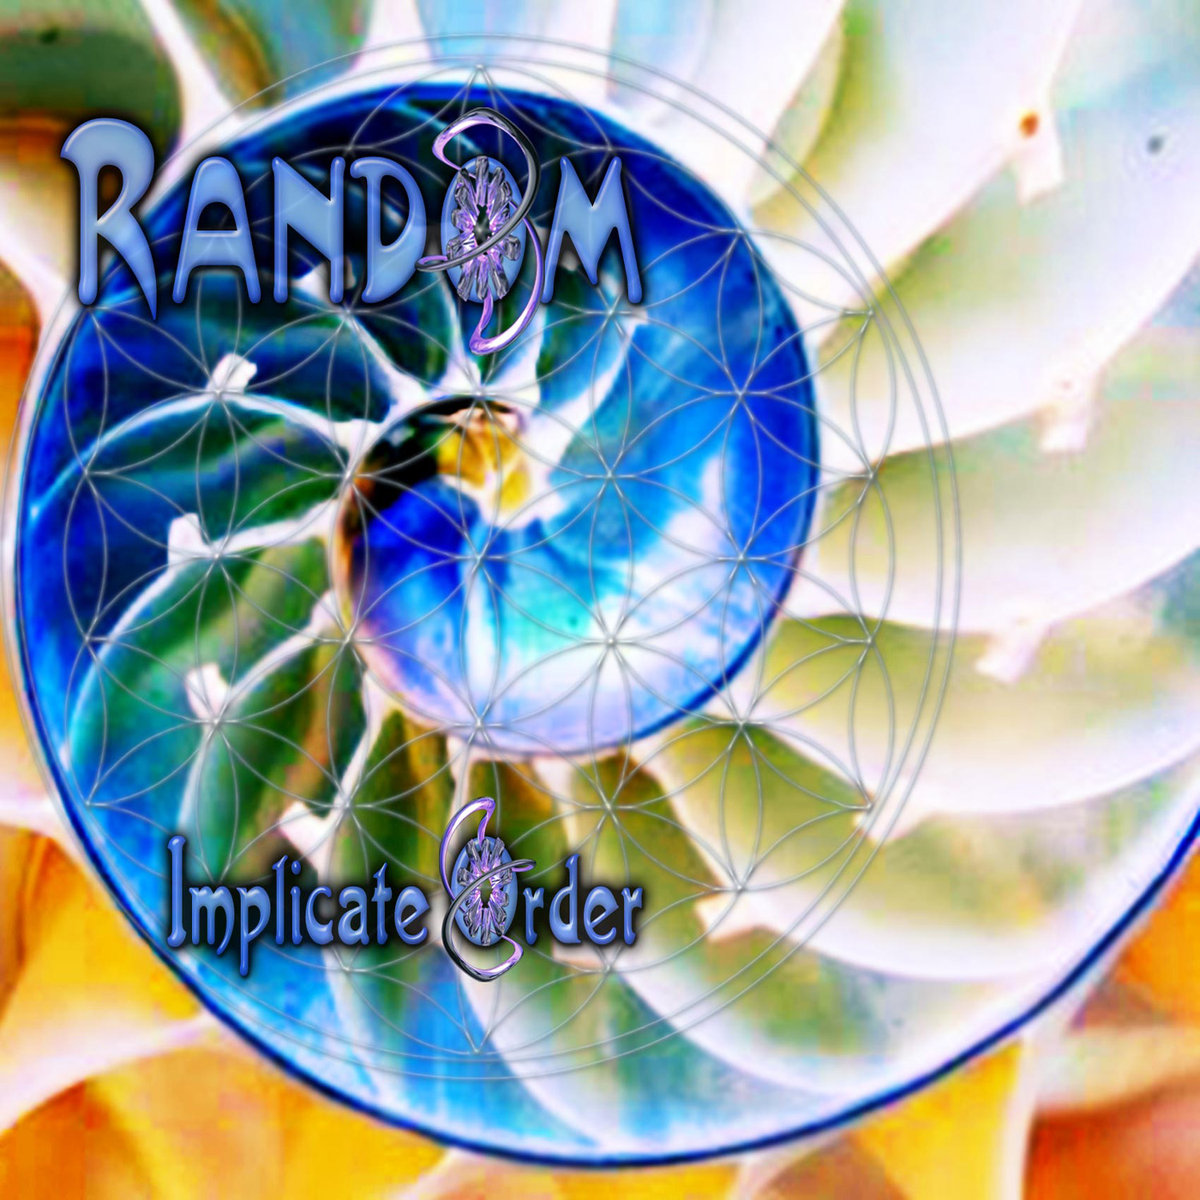 Random - Inured @ 'The Implicate Order' album (electronic, goa)